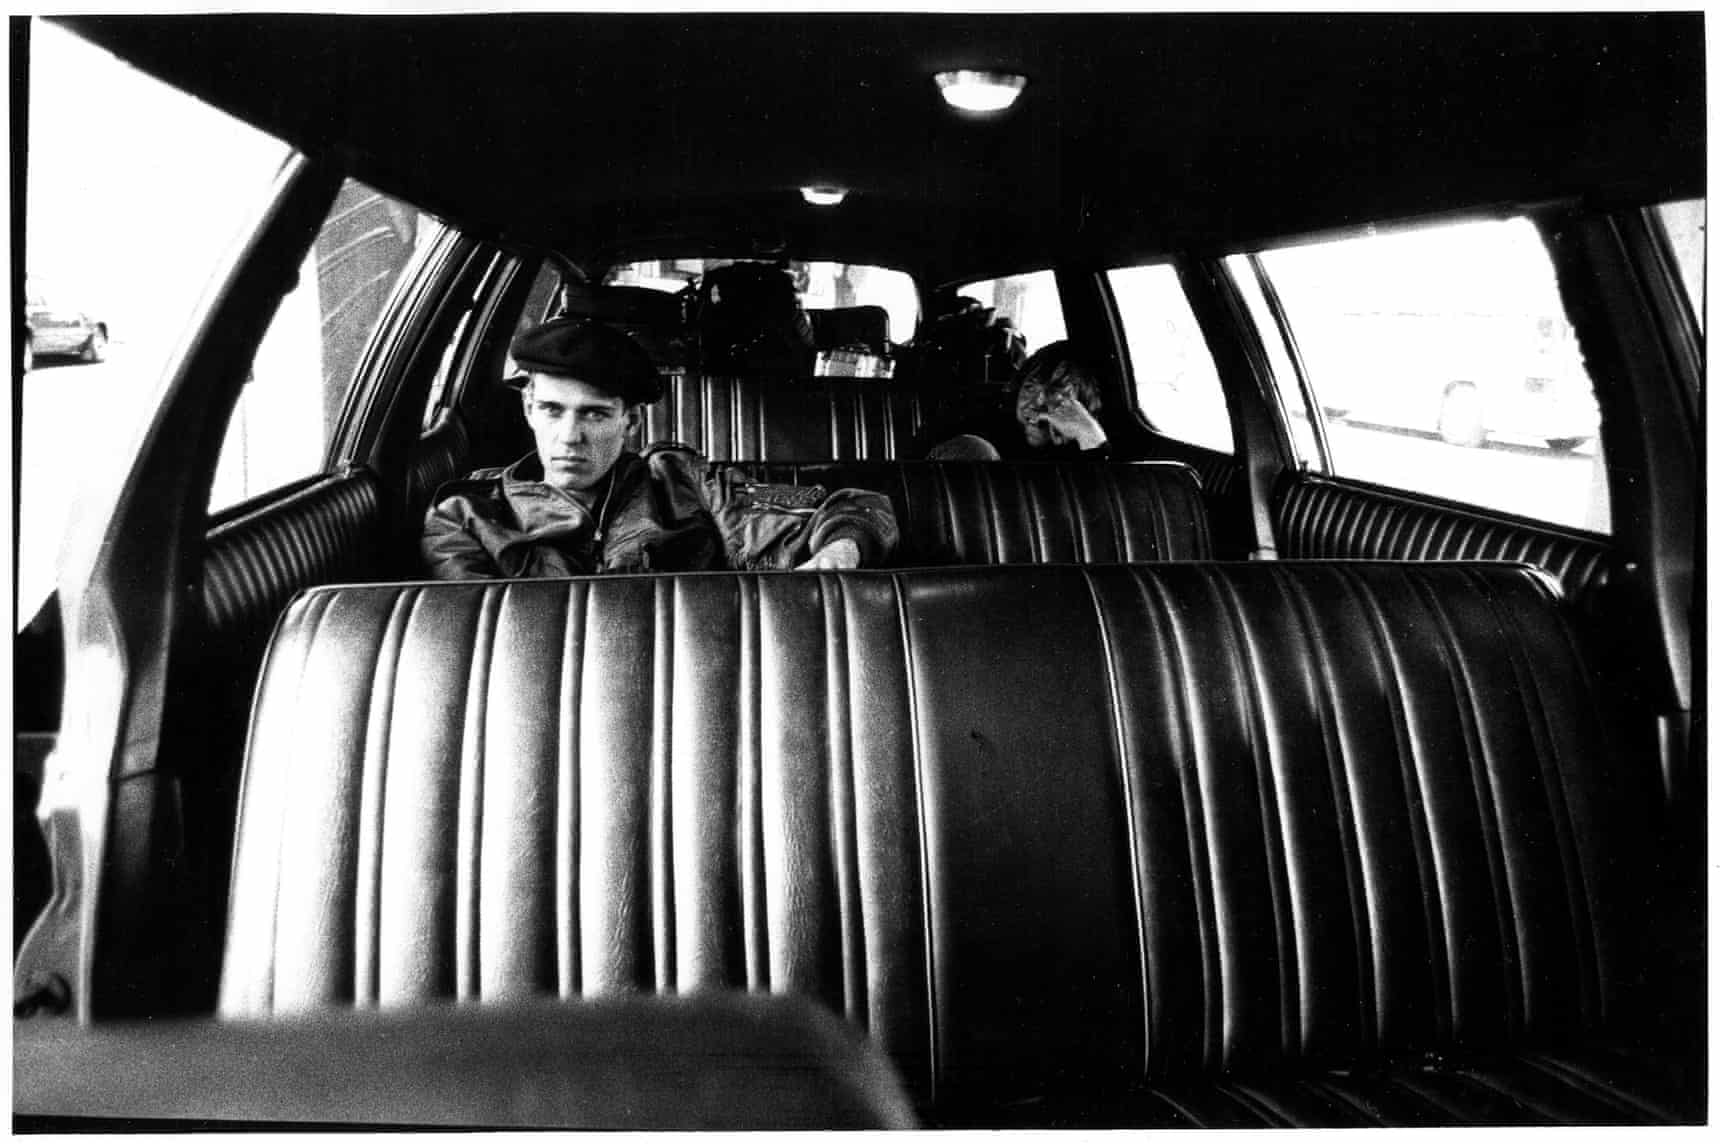 An image of Paul Simonon in the back of a car